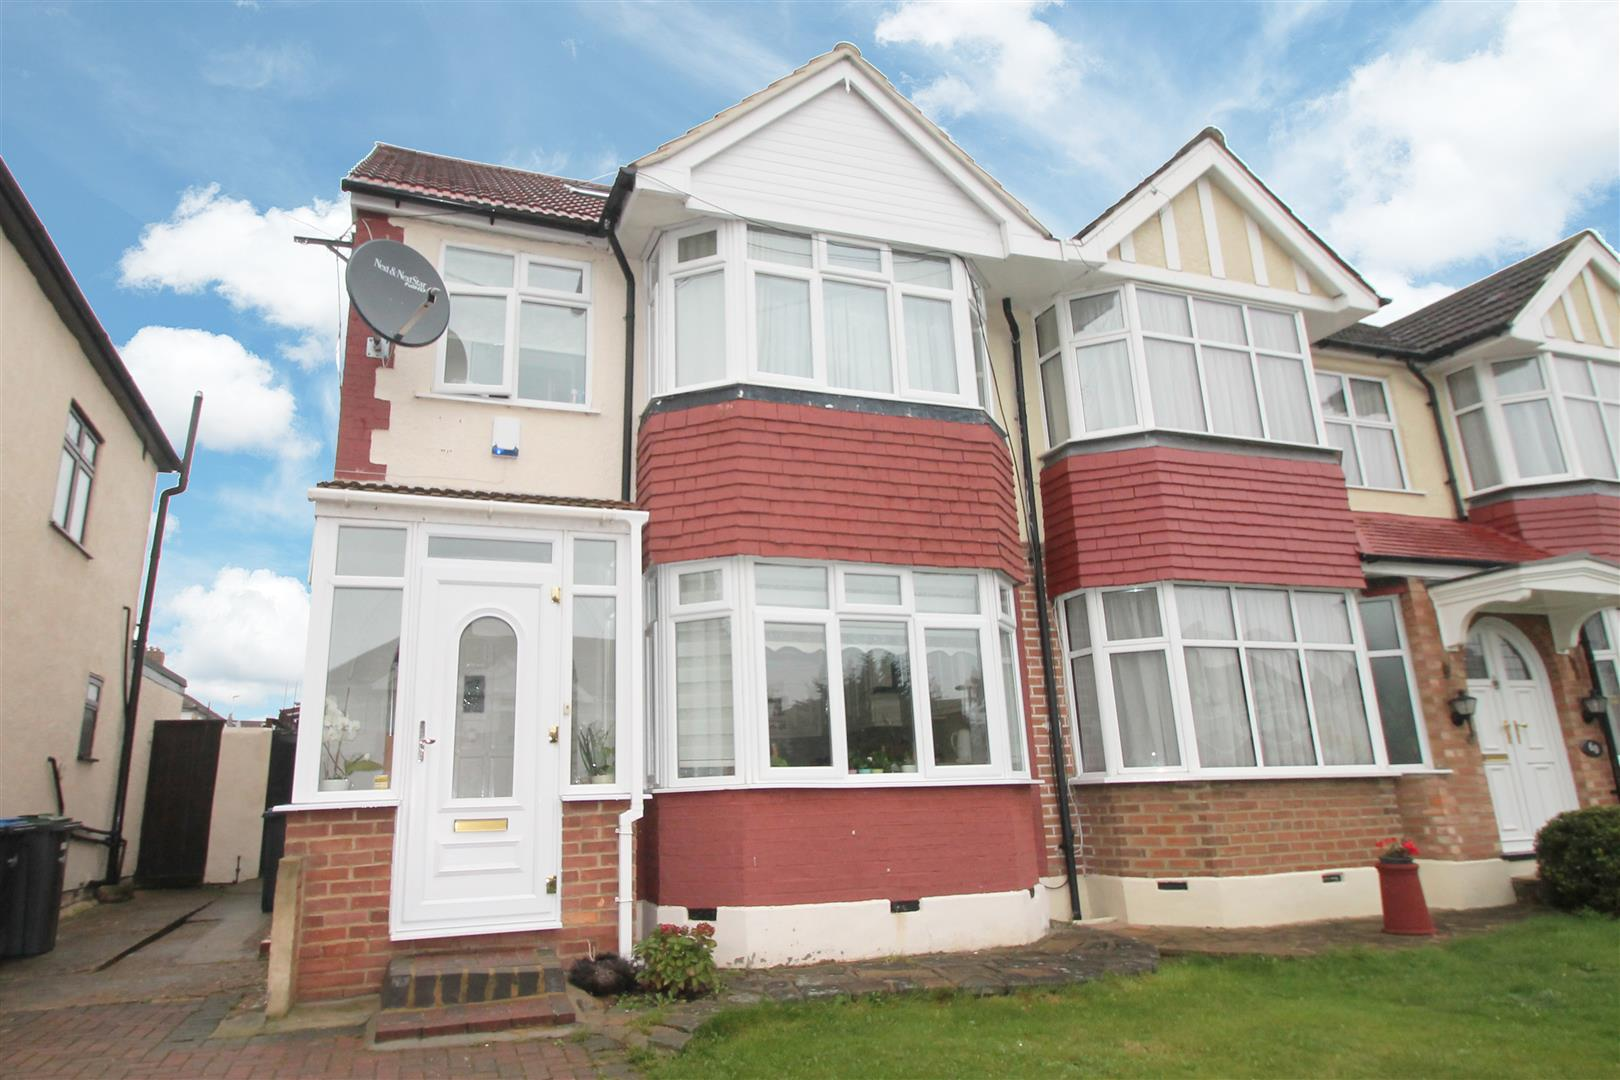 4 Bedrooms Semi Detached House for sale in The Fairway, Palmers Green, London N13